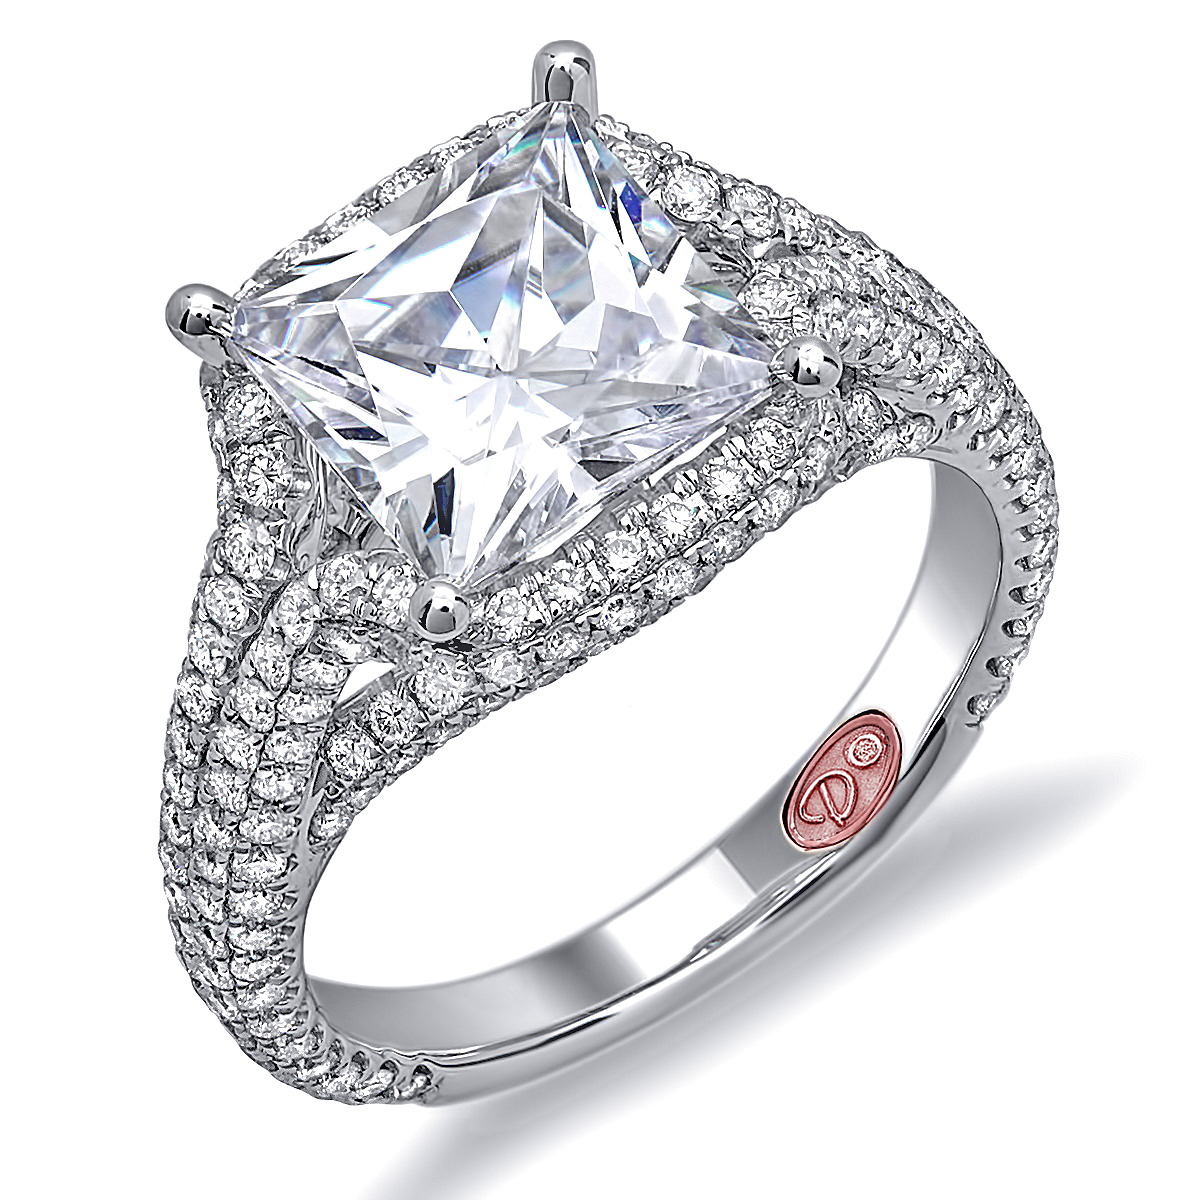 on attachment of engagement ring rings diamond cool band xolhmcm awesome finger order wedding